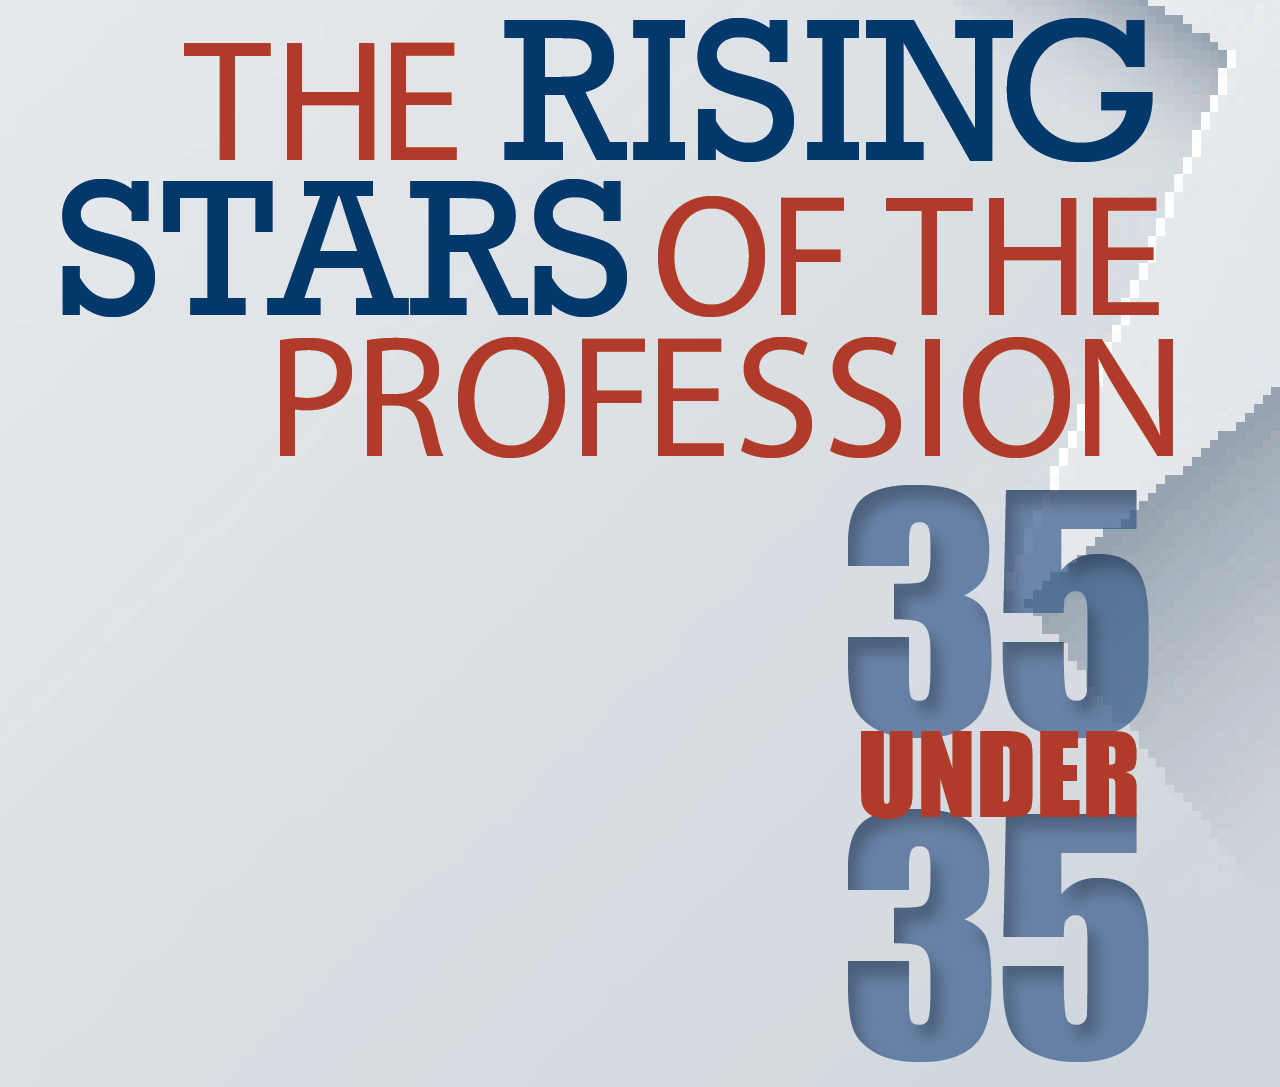 The 2014 Rising Stars of the Profession: 35 Under 35